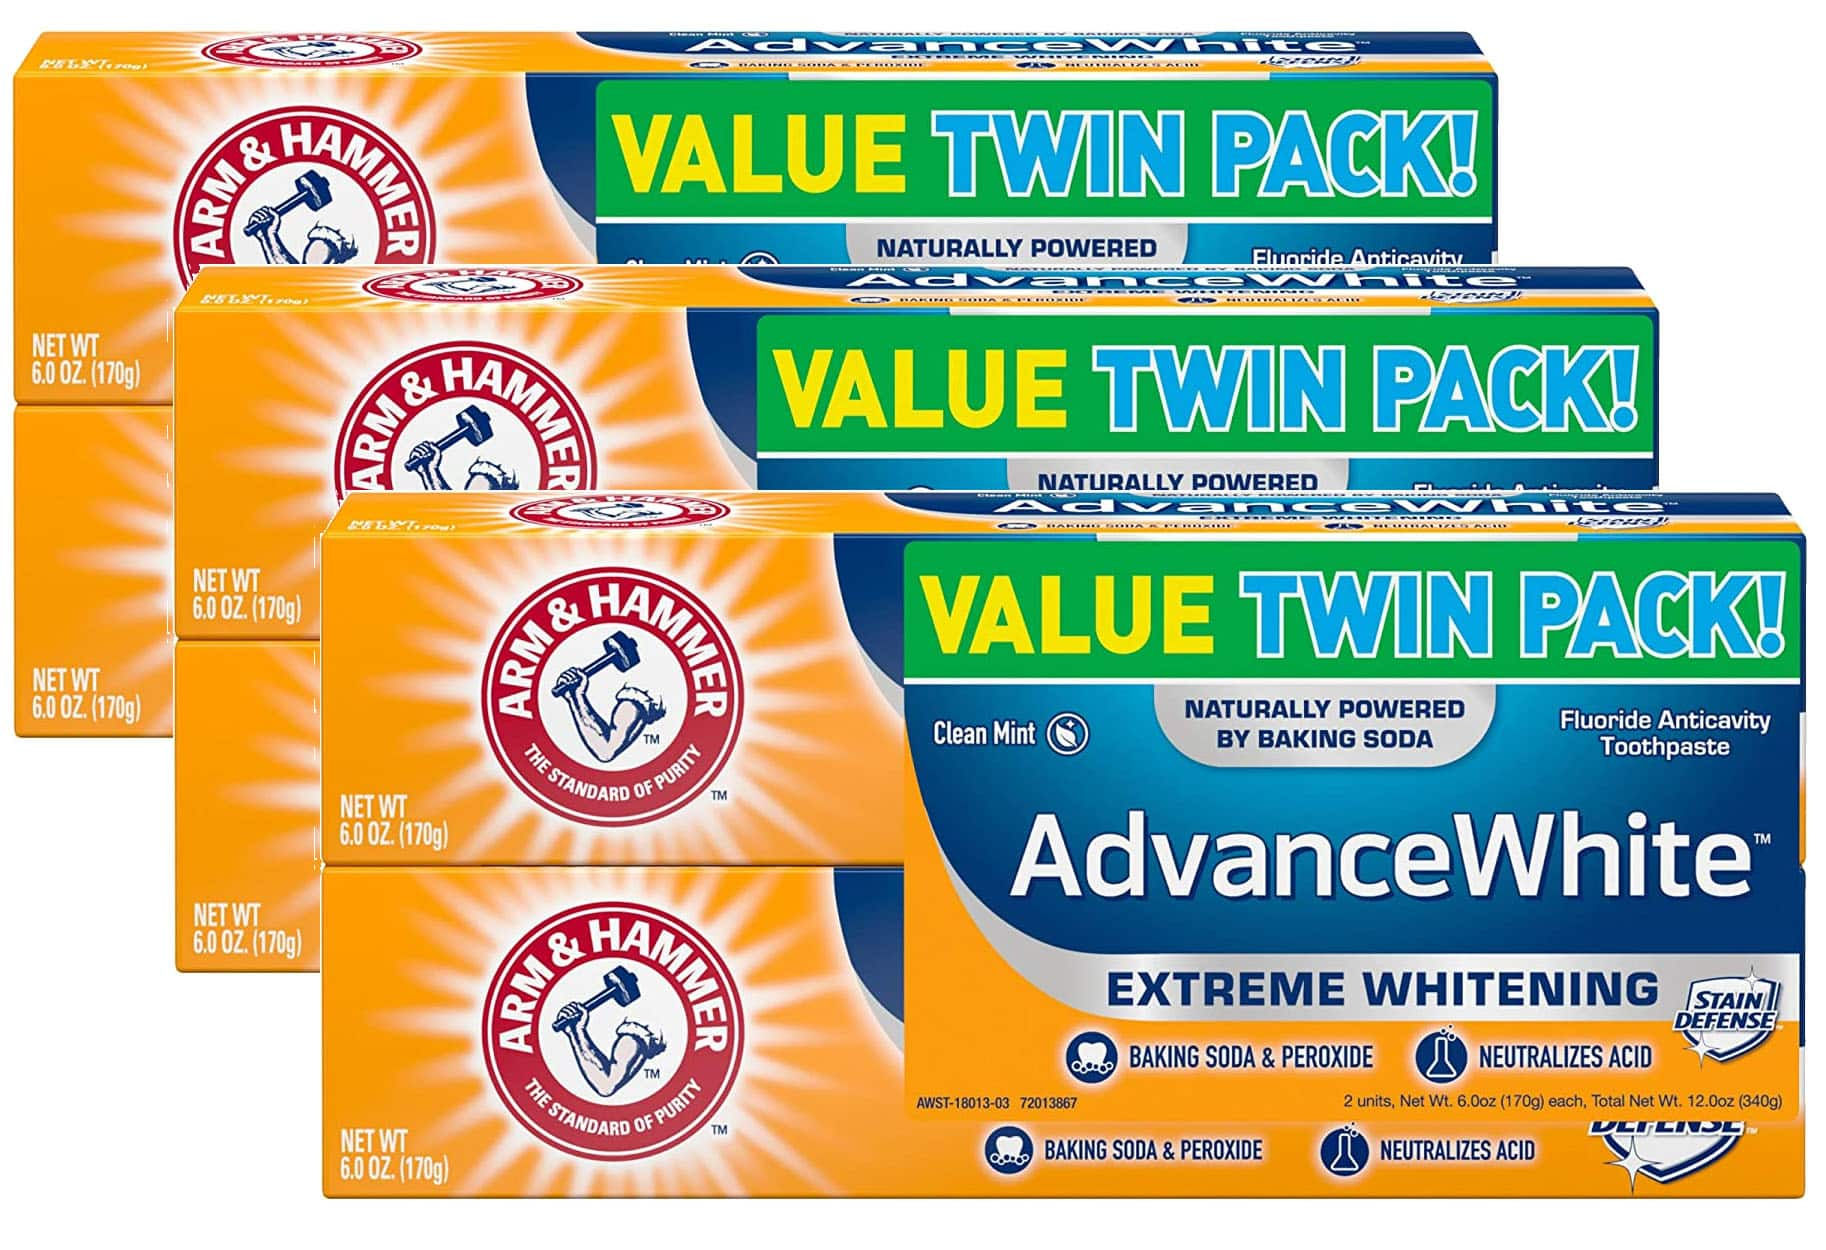 2-Pack 6-Oz Arm & Hammer Advance White Toothpaste (Fresh Mint) 3 for $10.88 ($1.81 per tube) + Free Shipping w/ Prime or on $25+